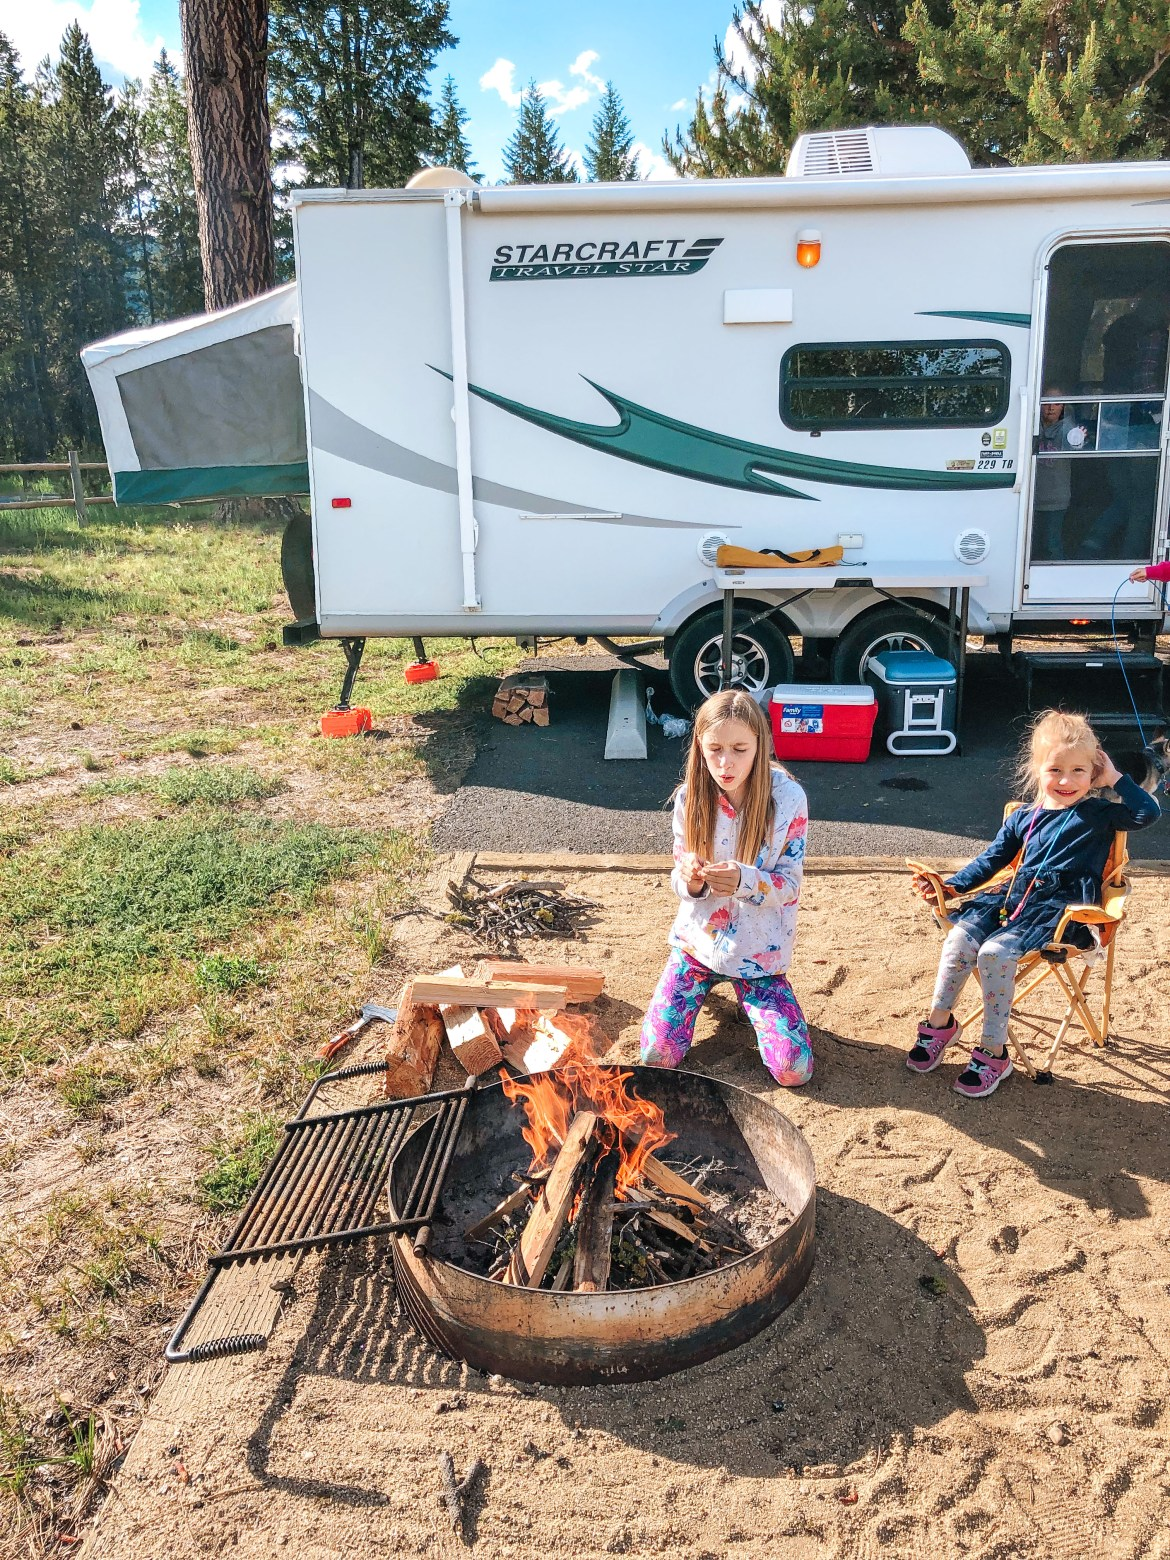 Two young sisters sit in camp chairs around a fire pit and fire at a campsite at Idaho's Cascade Lake State Park near Tamarack Resort and Donnelly, Idaho. Two coolers are visible near a table and stacked wood nearby a hybrid 2012 Starcraft travel trailer.  One of the trailer's canvas pop-out beds is visible in the background.